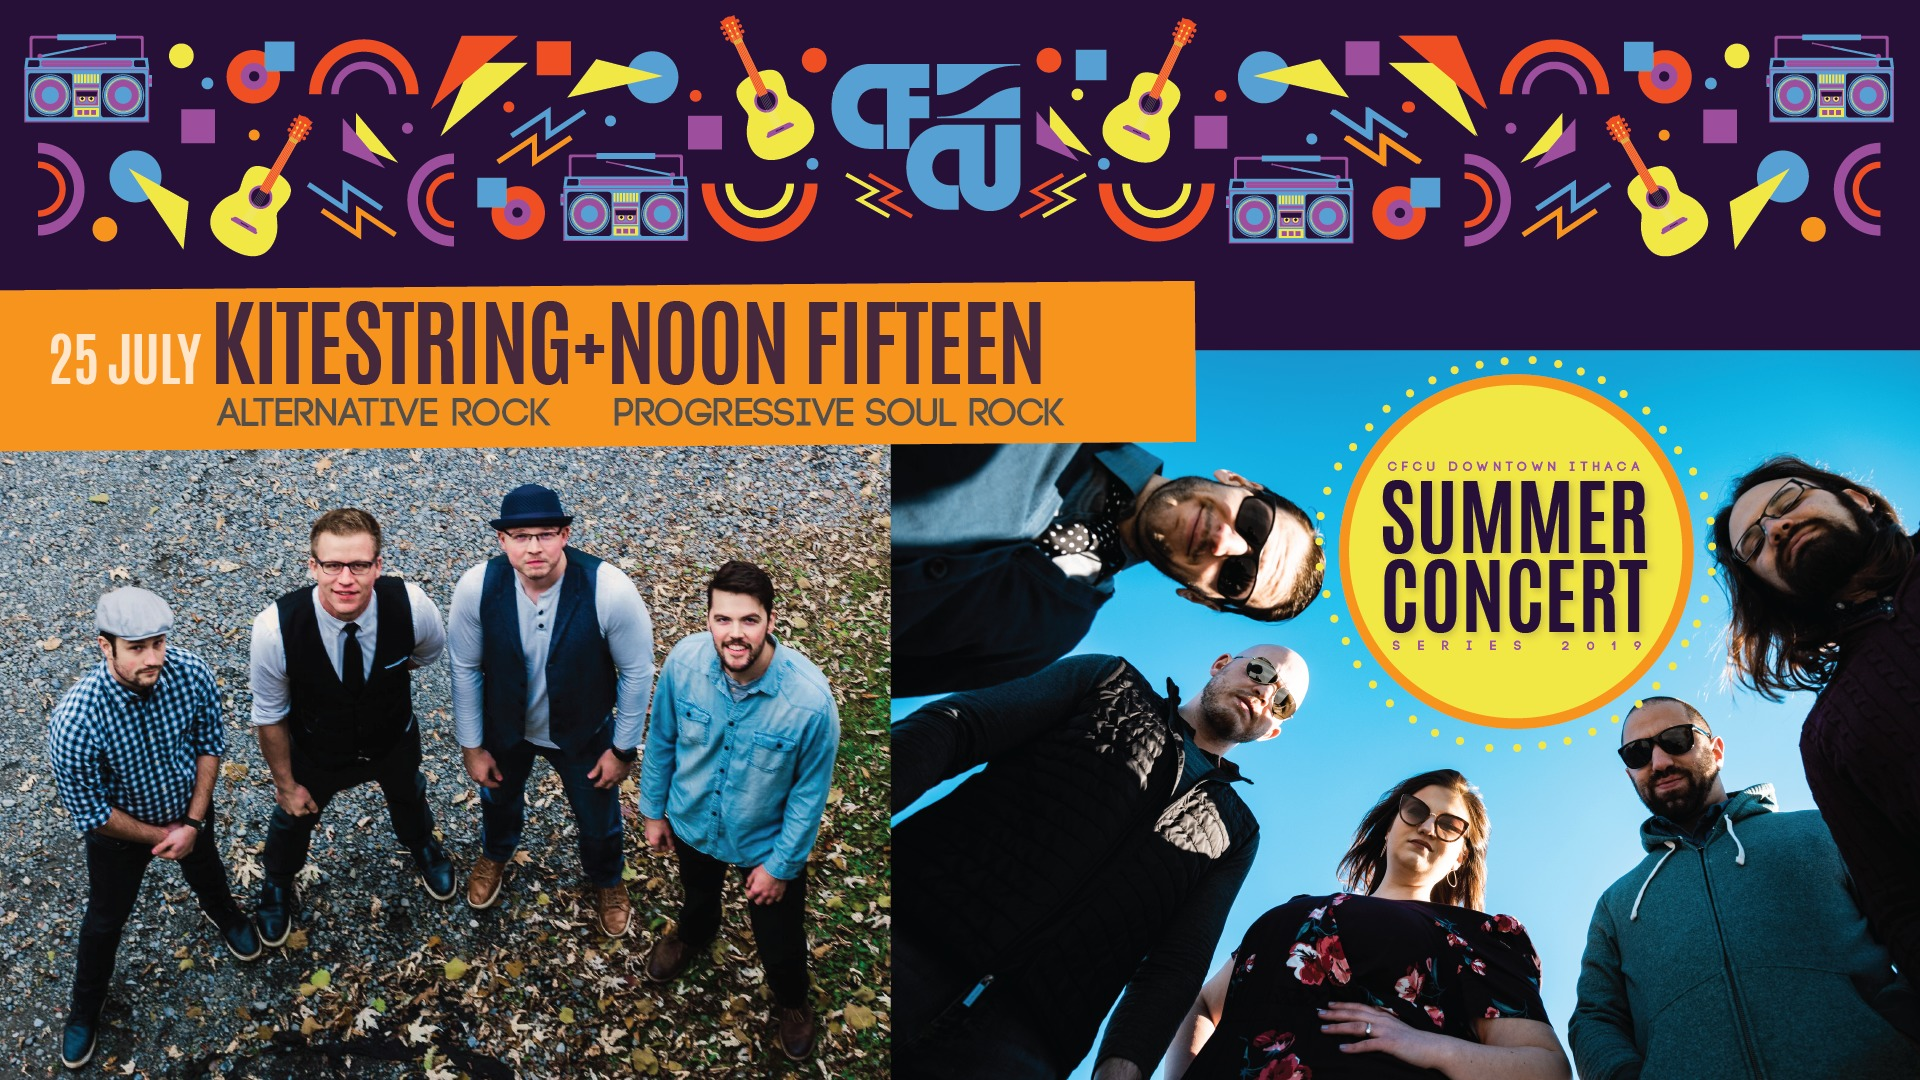 Kitestring and Noon Fifteen